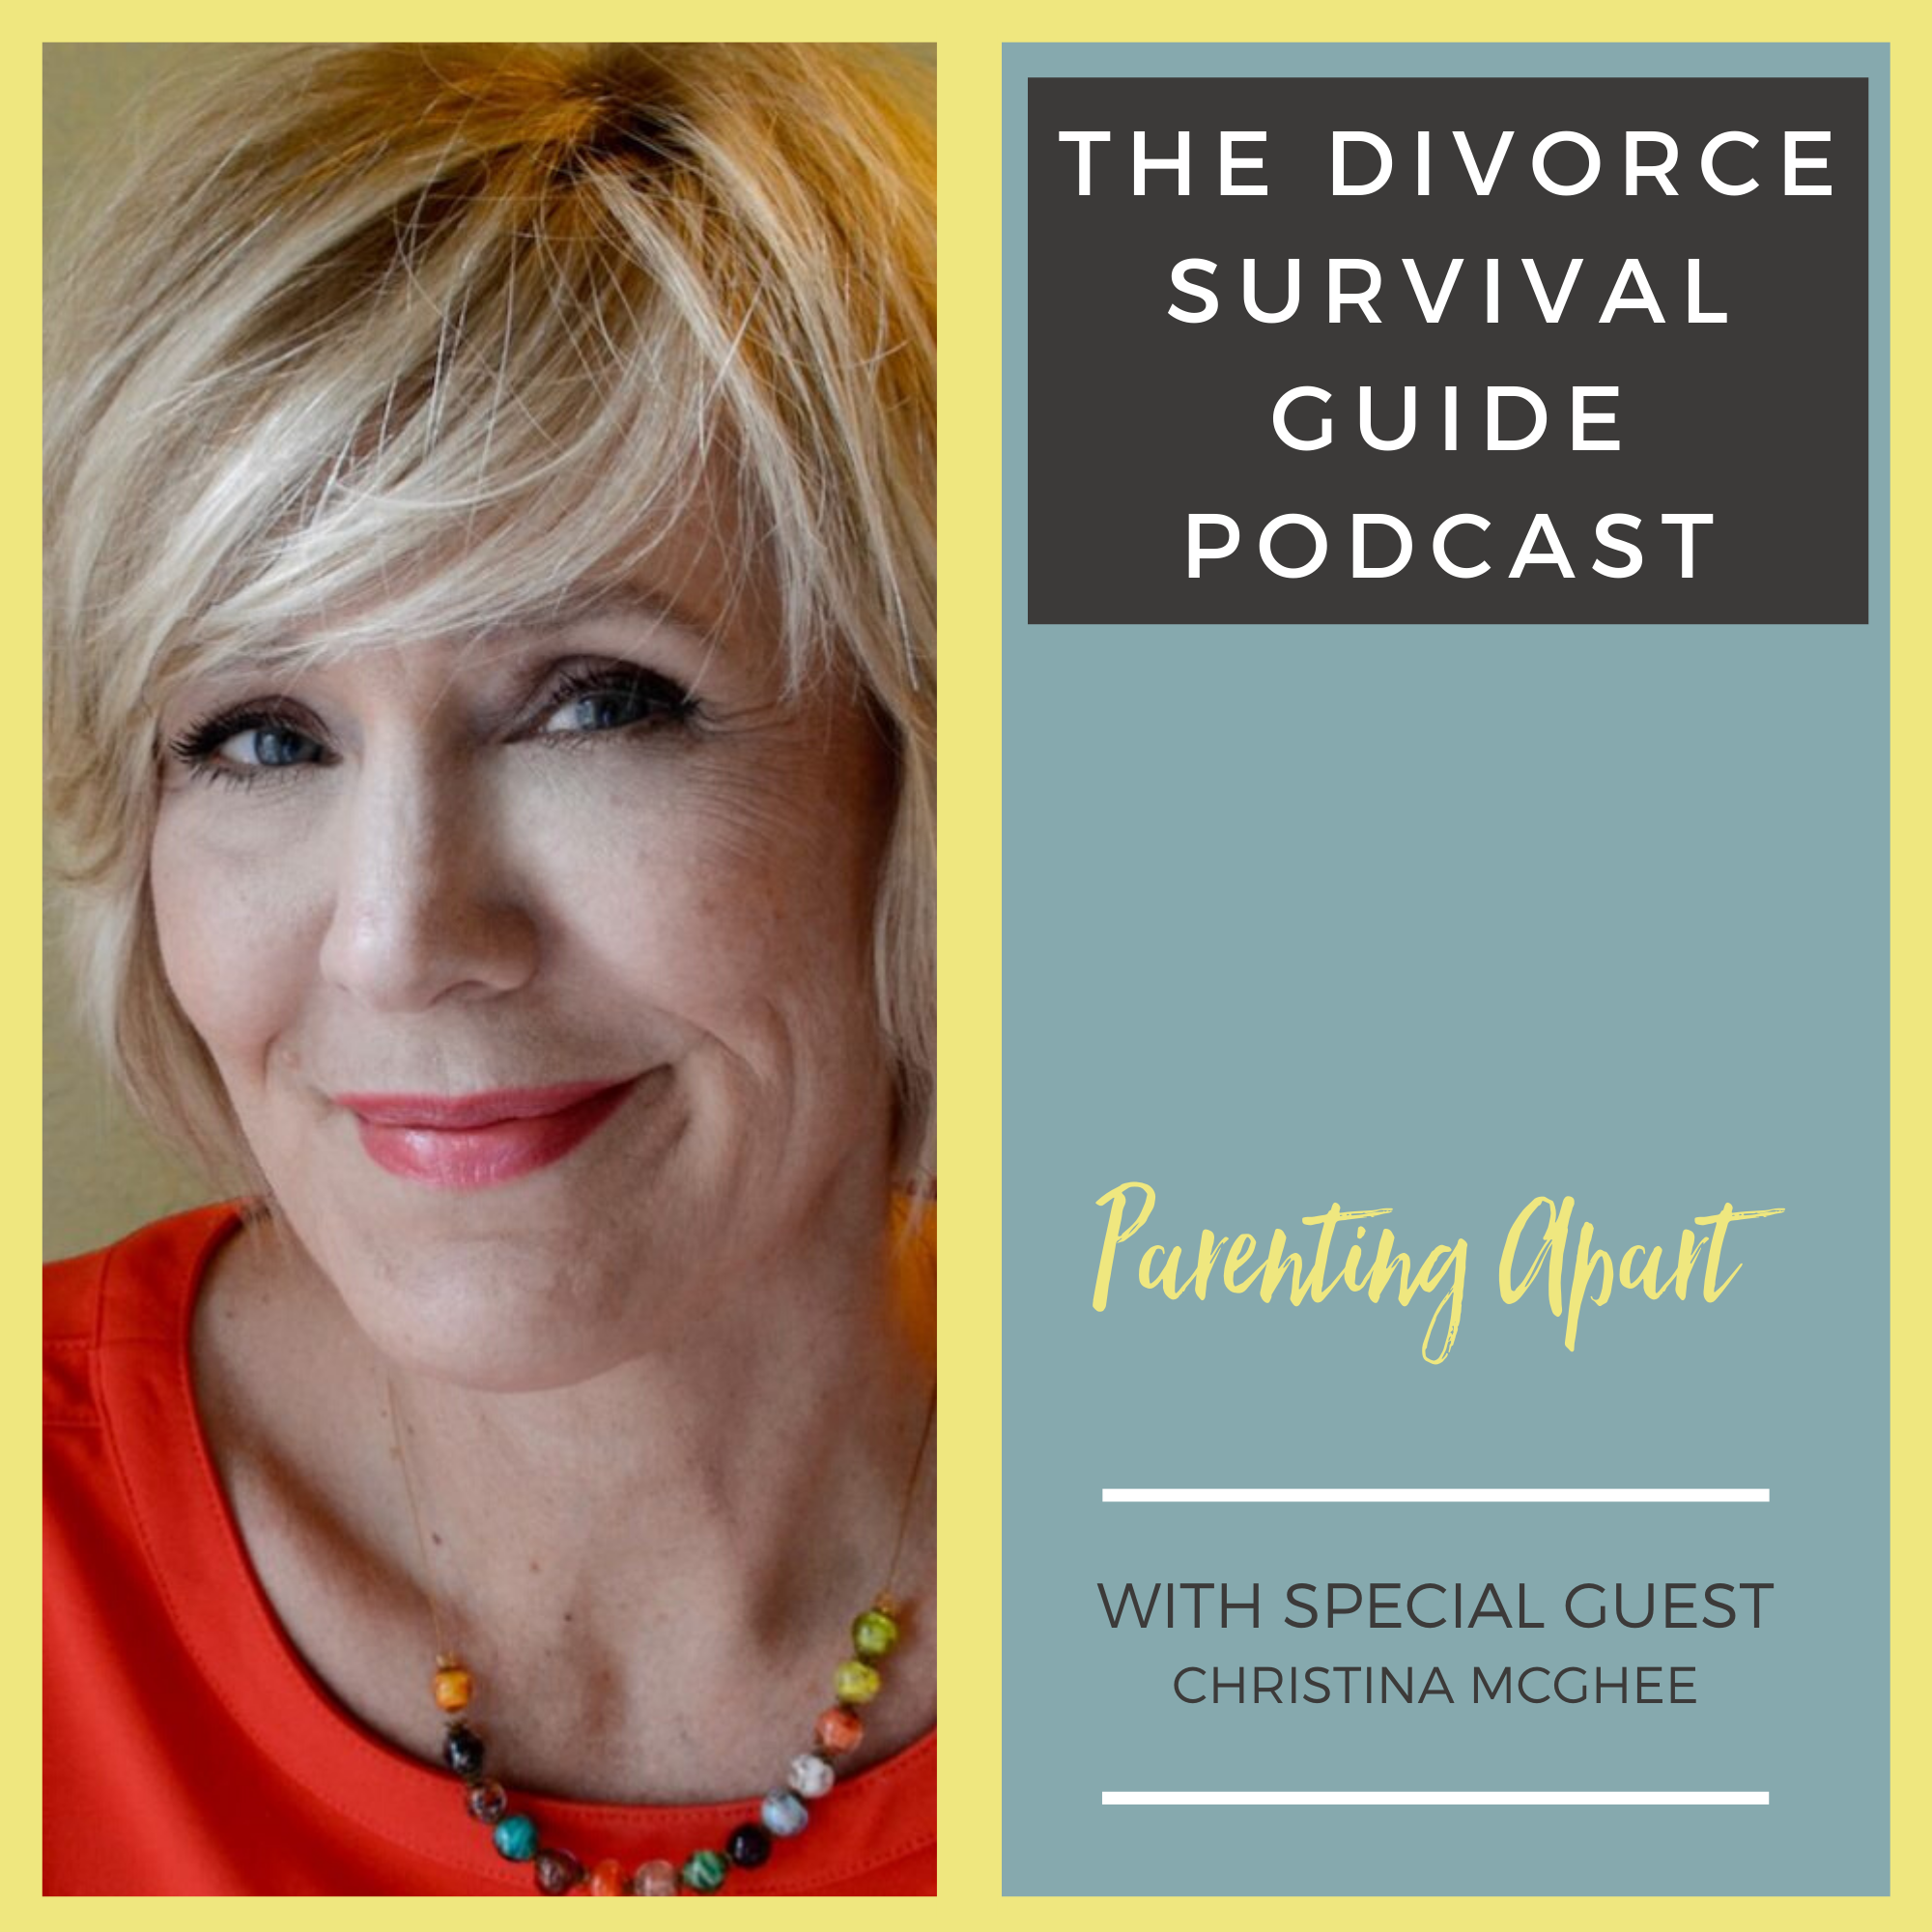 The Divorce Survival Guide Podcast - Parenting Apart with Christina McGhee